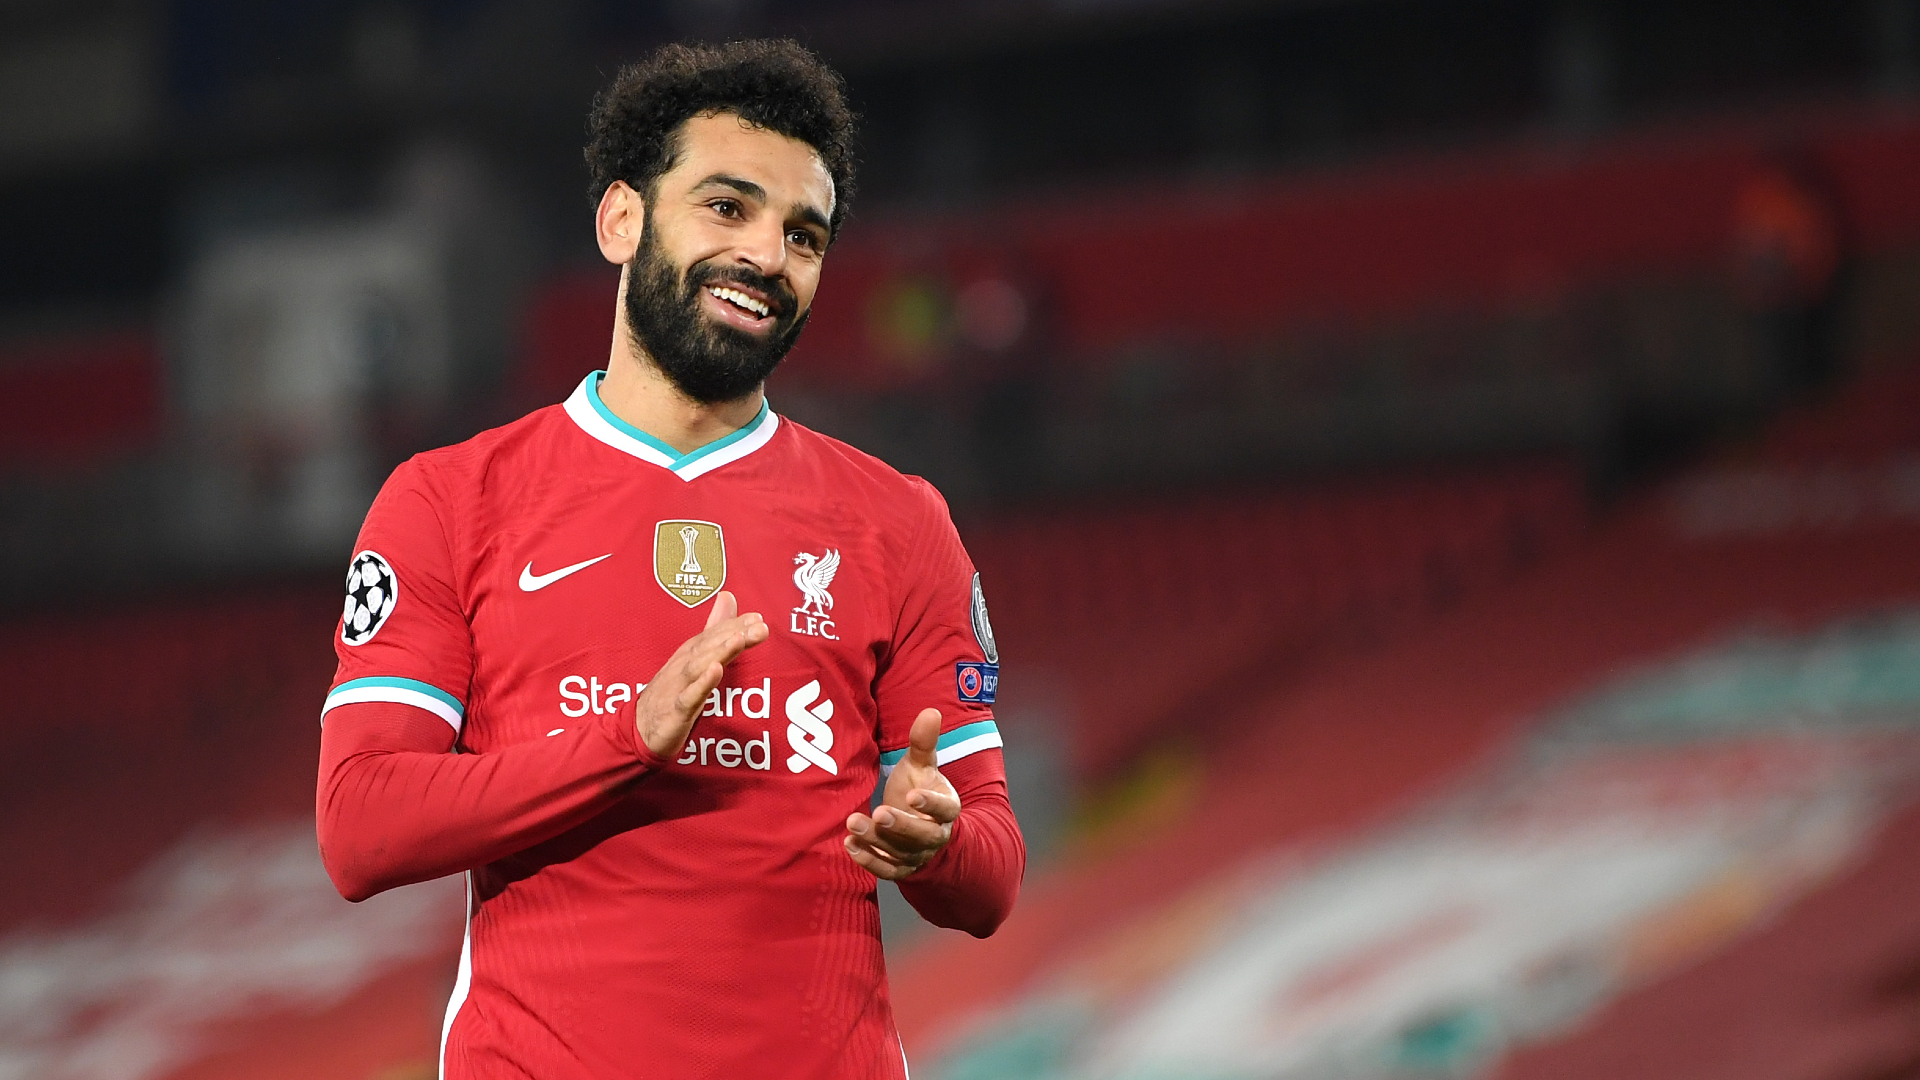 'Salah doesn't look unhappy at Liverpool' – Reds coach sees no reason to fear exit from Egyptian